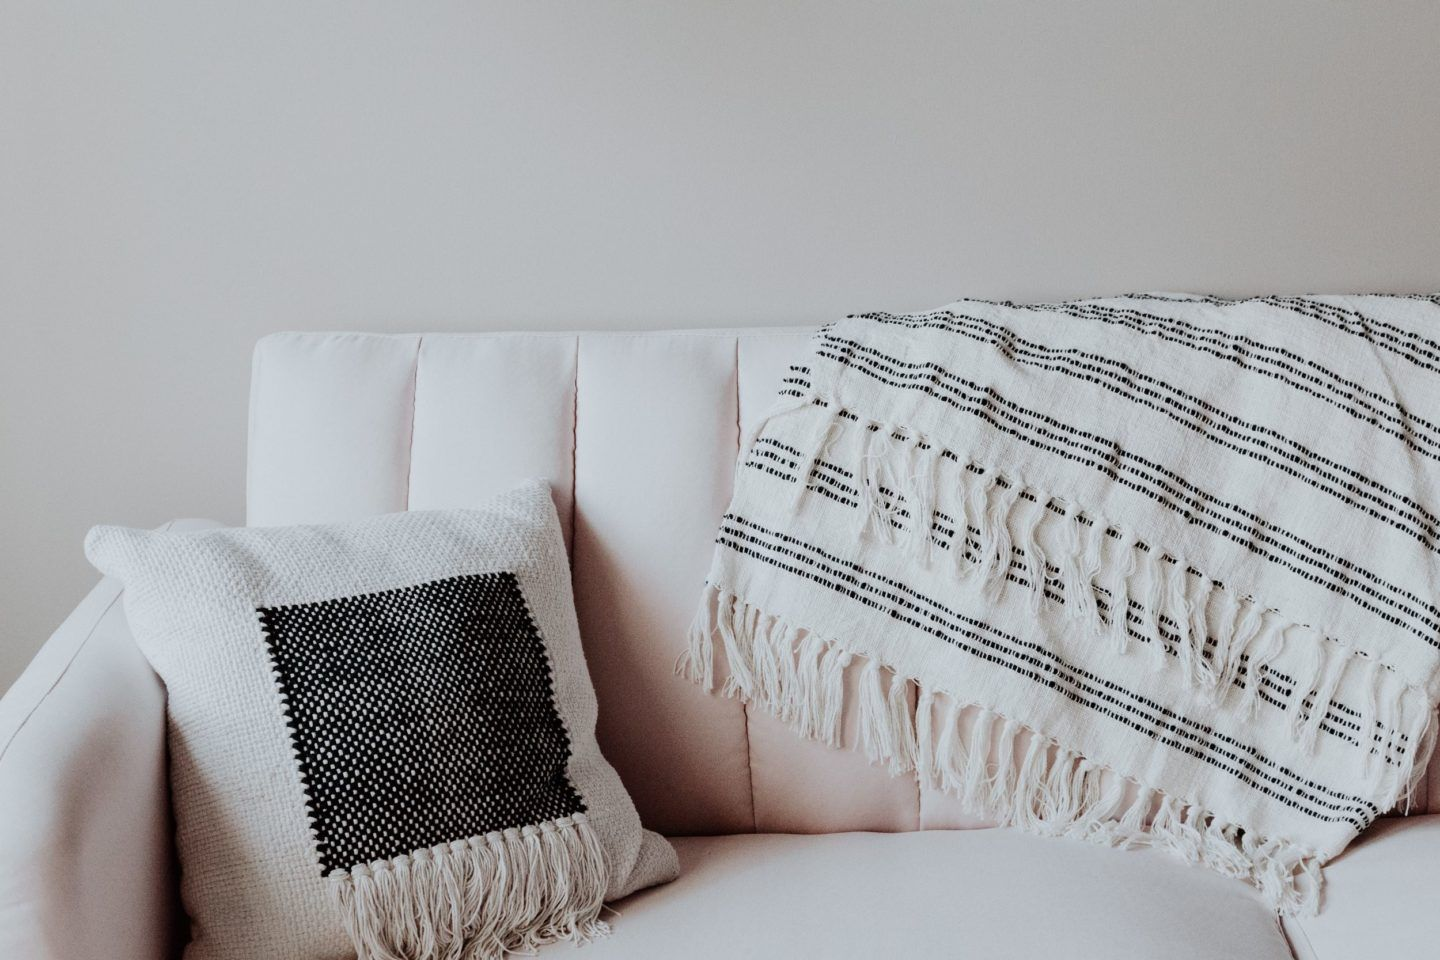 comfy couch to practice mindfulness on